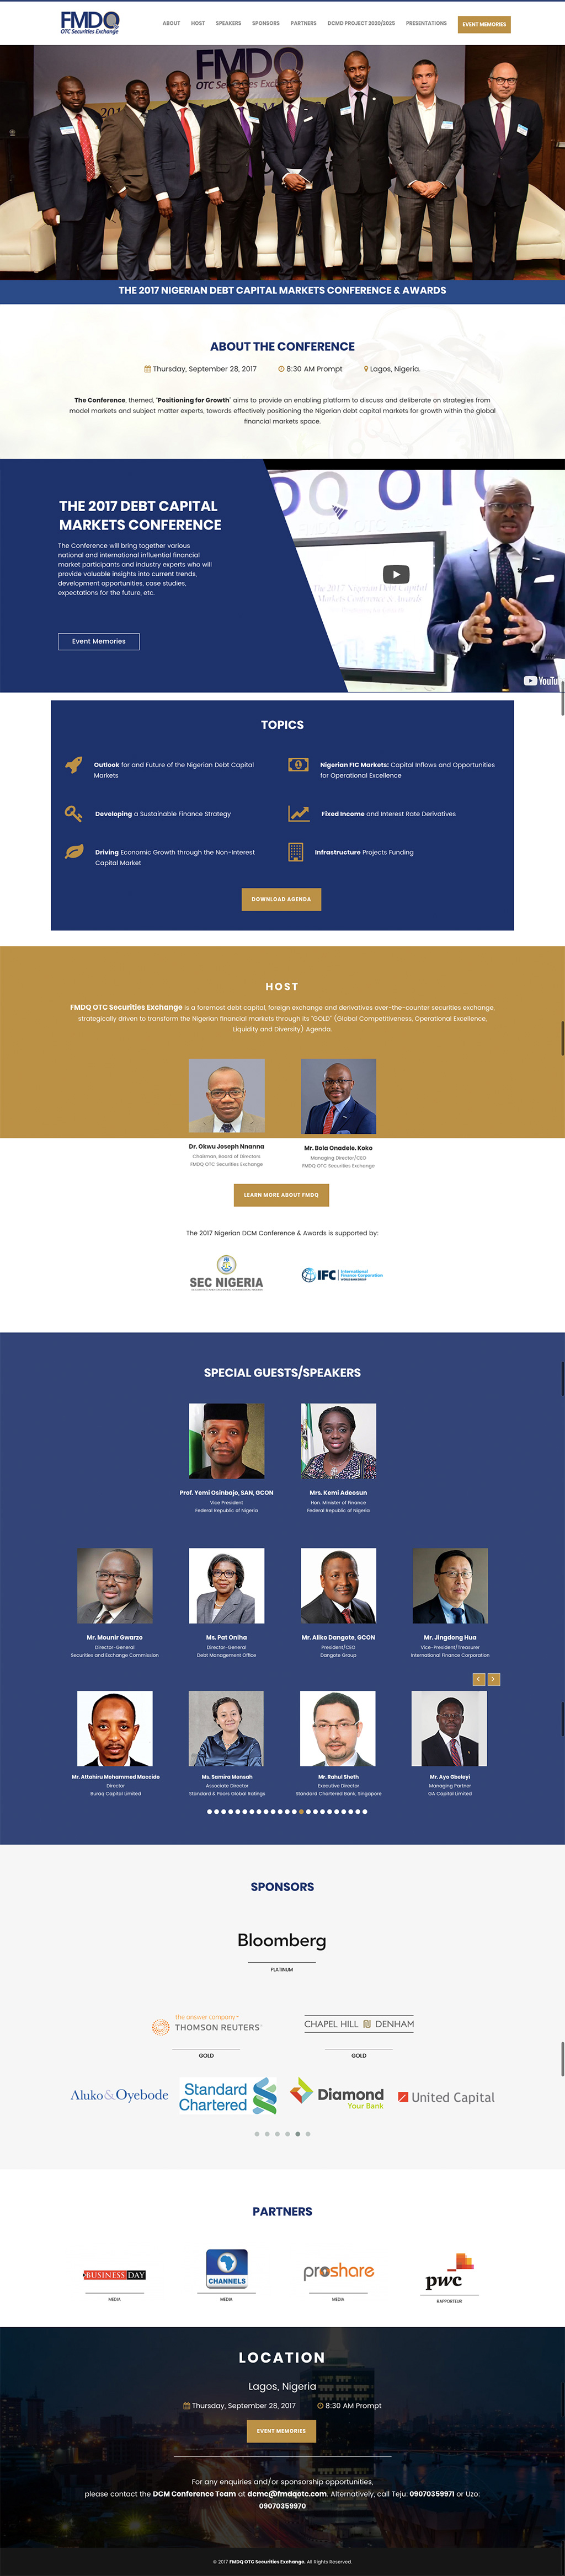 Website Design for FMDQ DCM Conference 2017